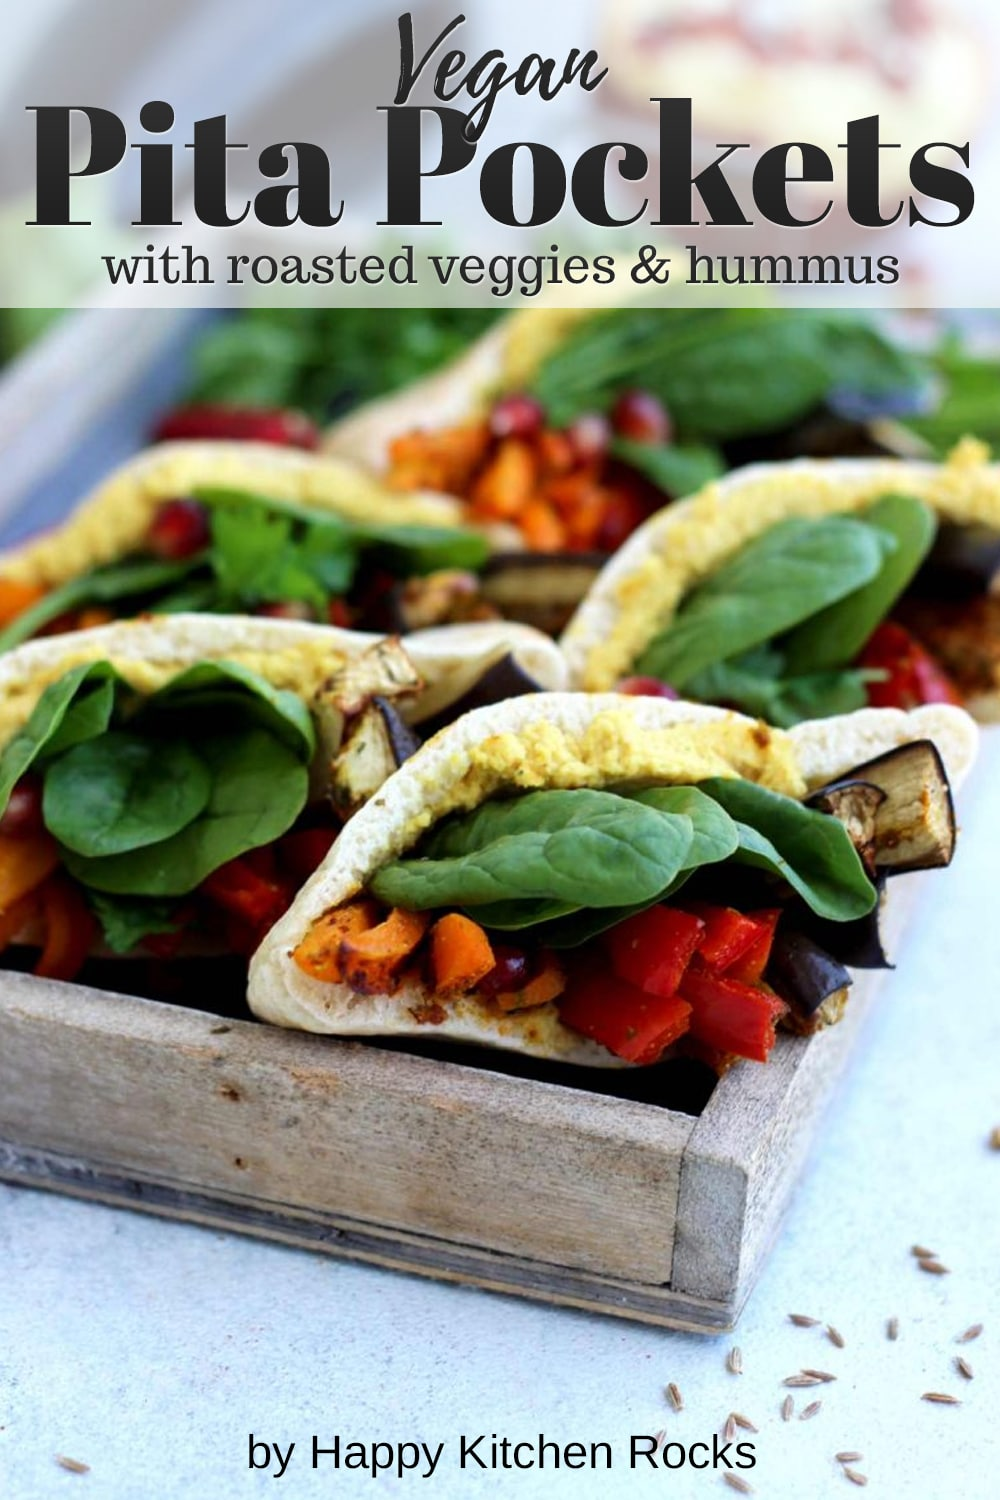 Pita Pockets with Roasted Veggies and Hummus Side View Collage with Text Overlay